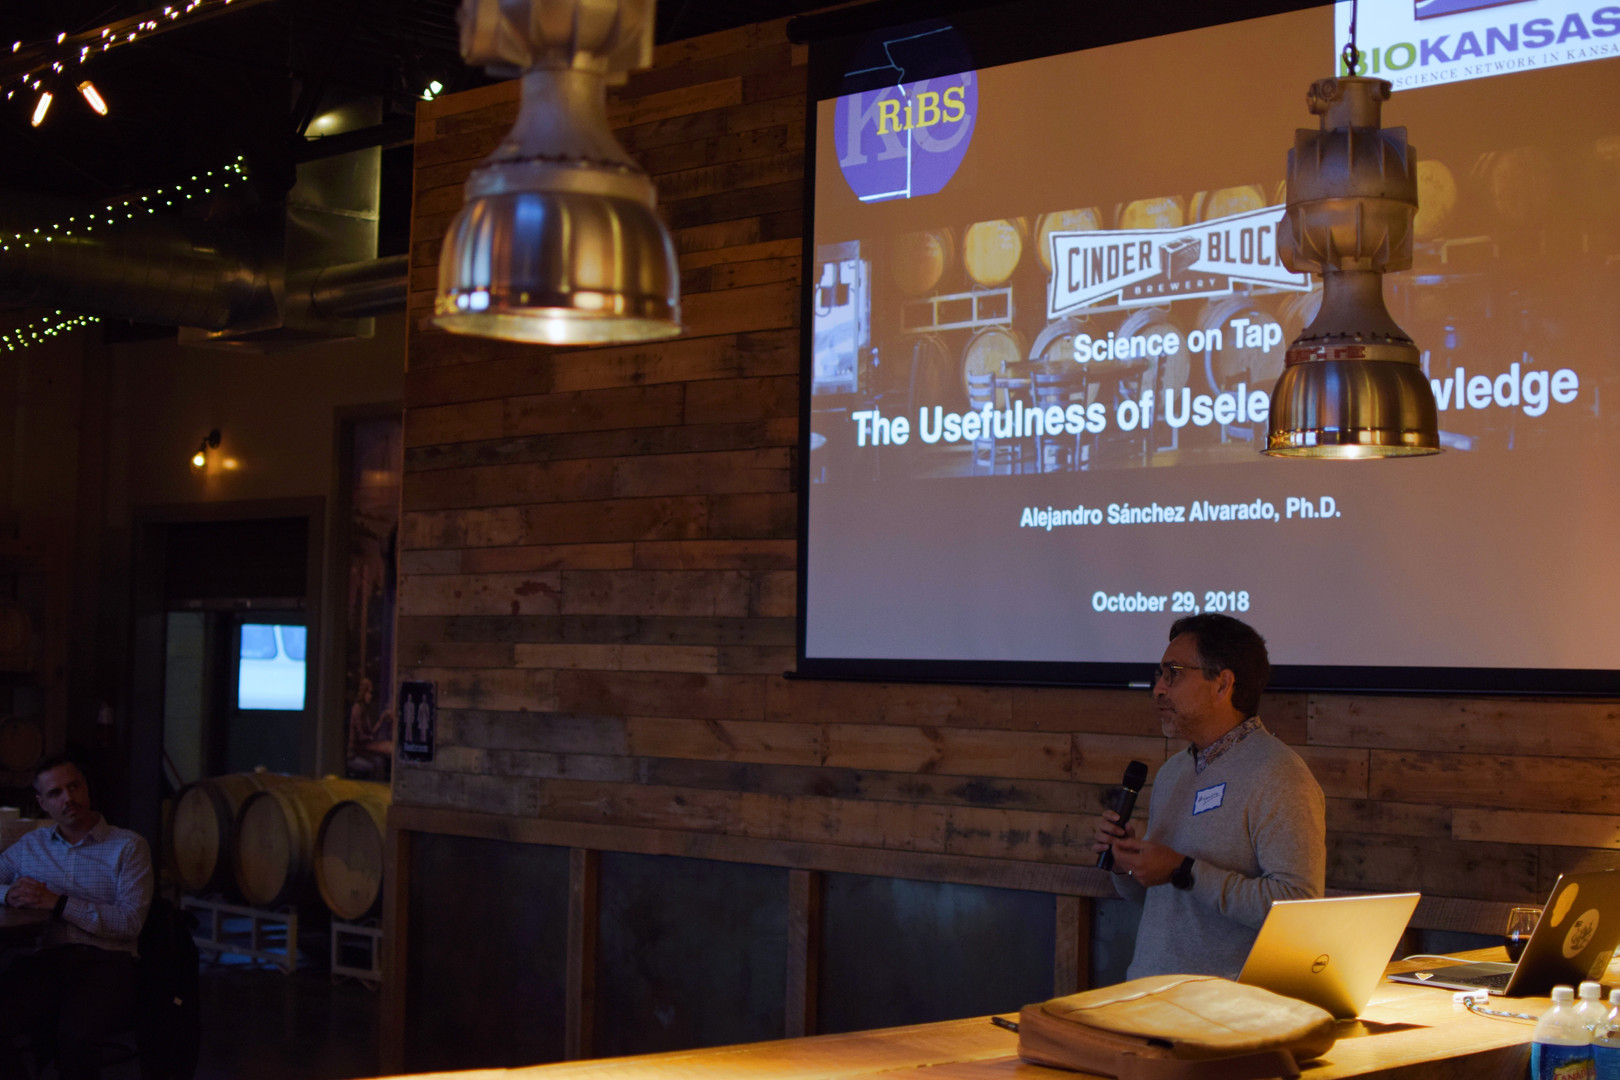 Science on Tap- The Usefulness of Useless Knowledge